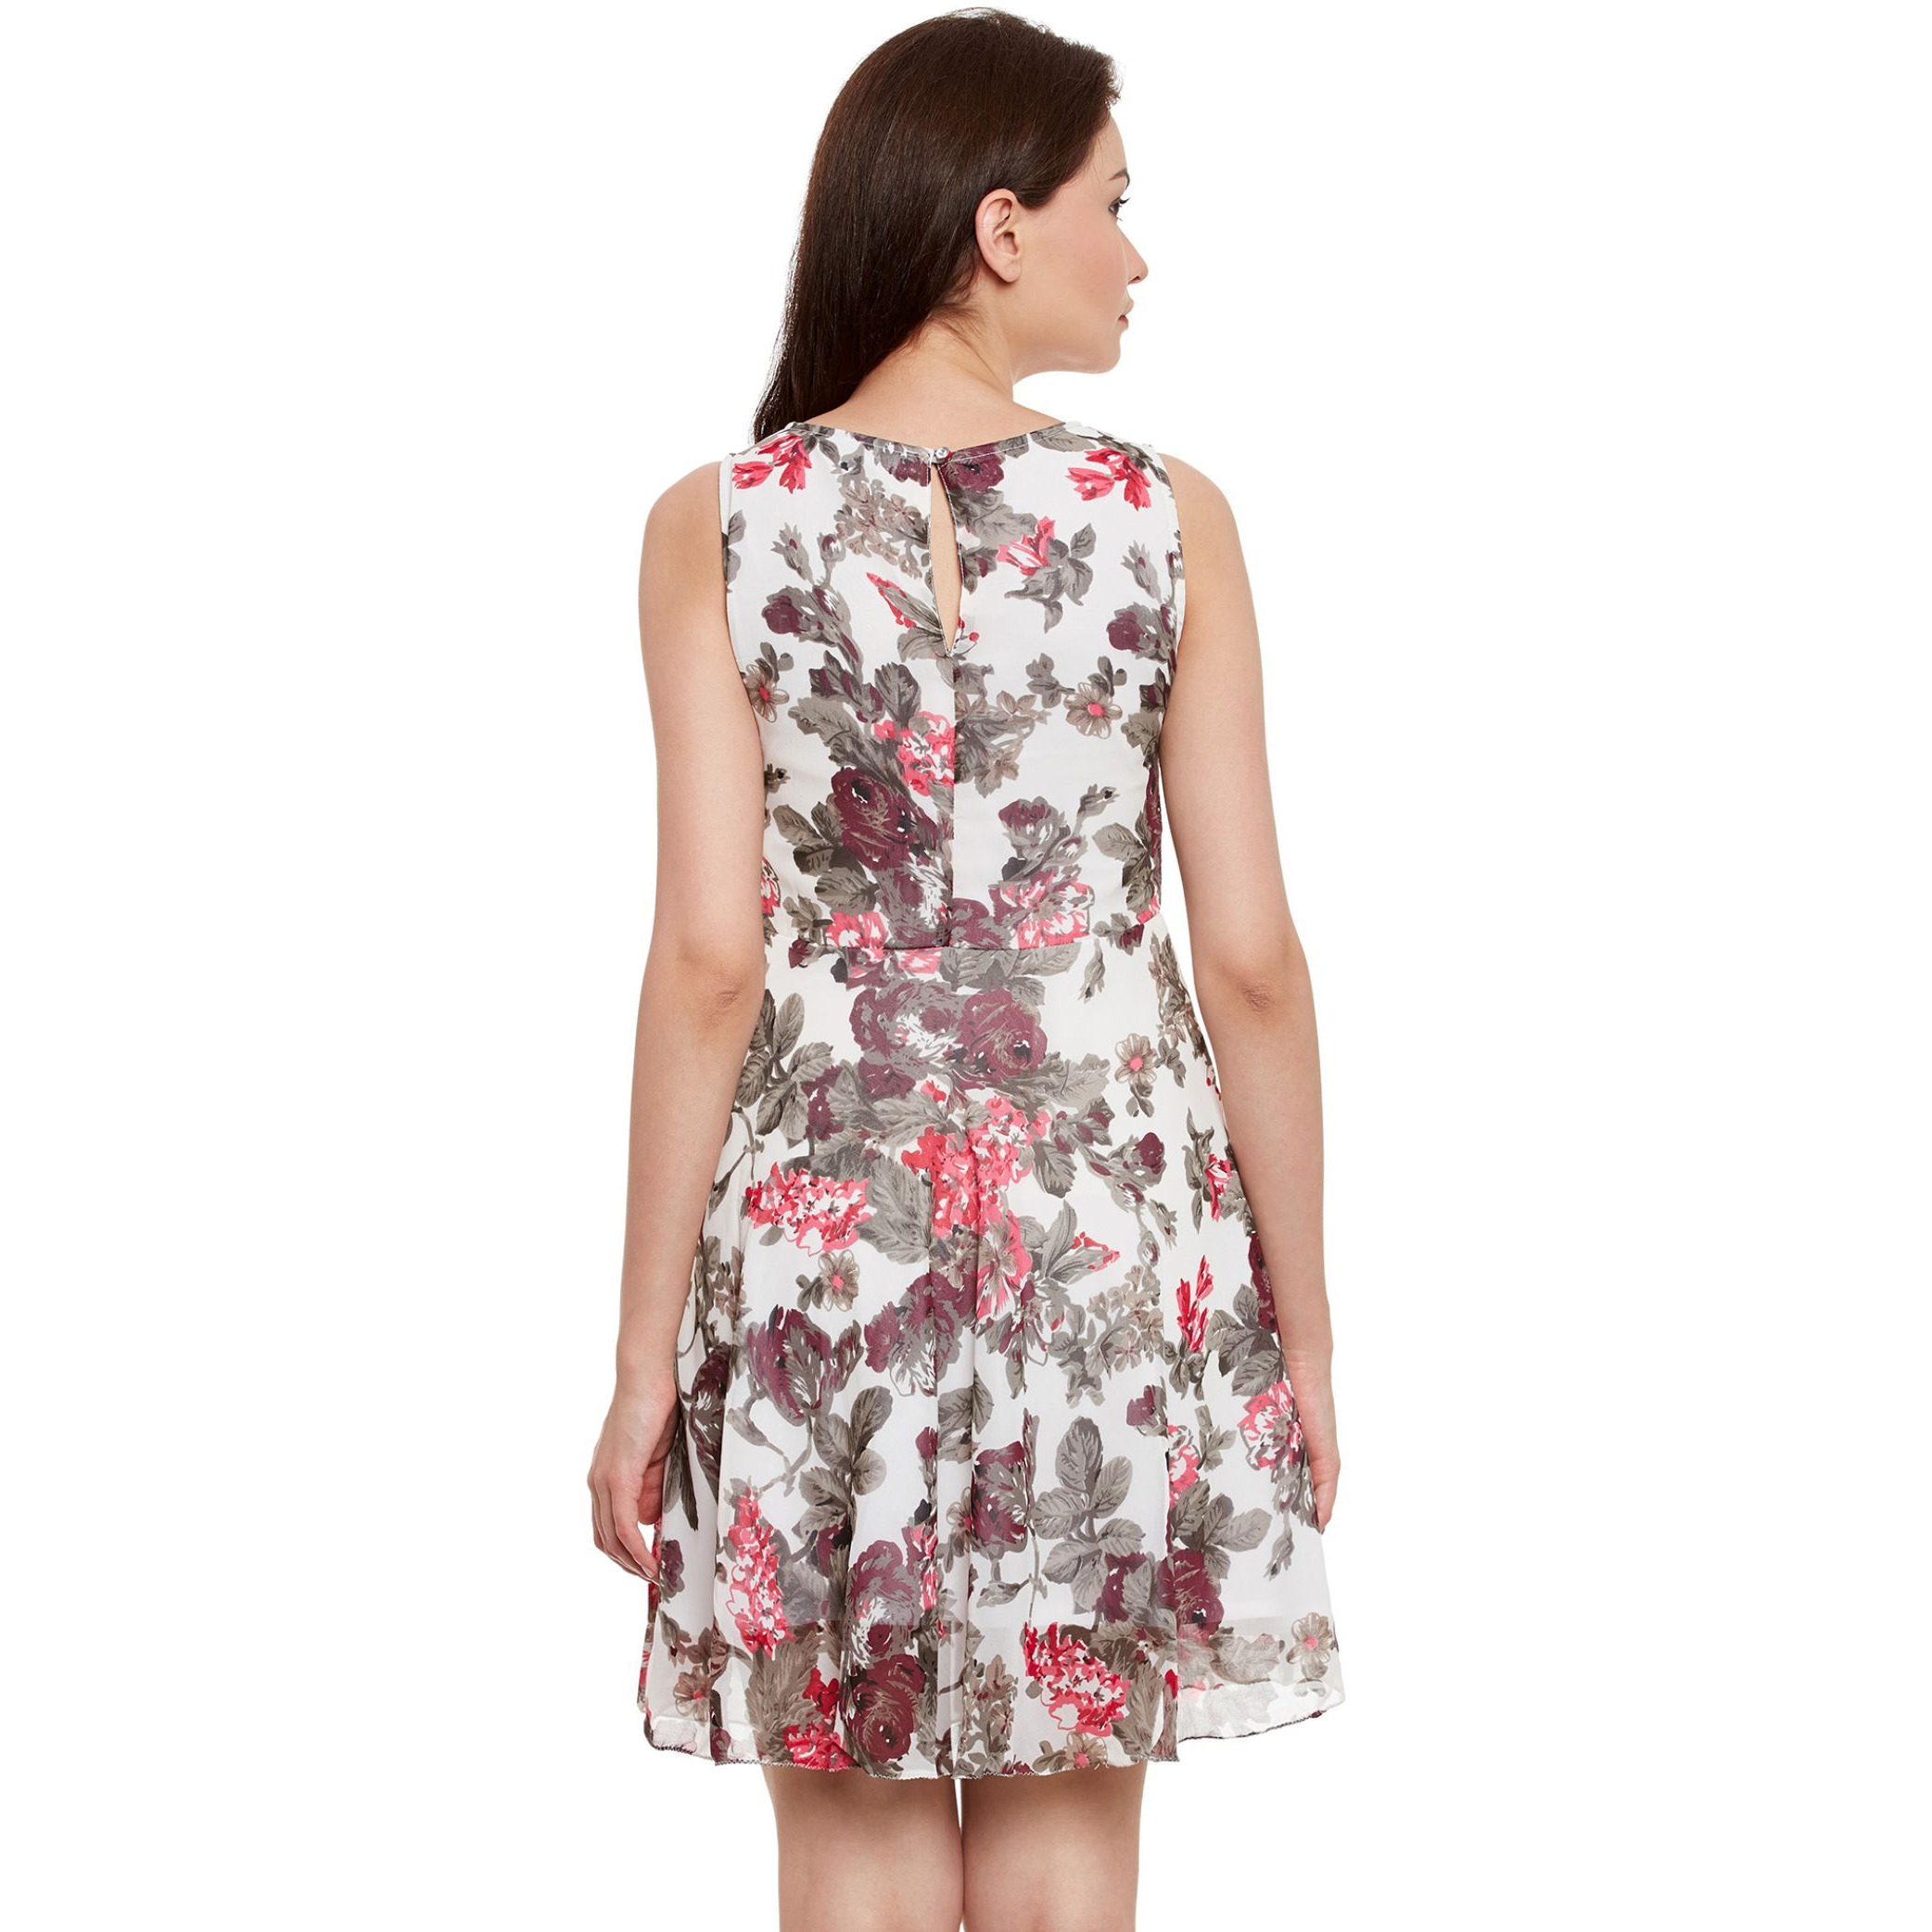 Double Layer Skater Dress In Floral Print With Gathers At Waist (Size:XL)